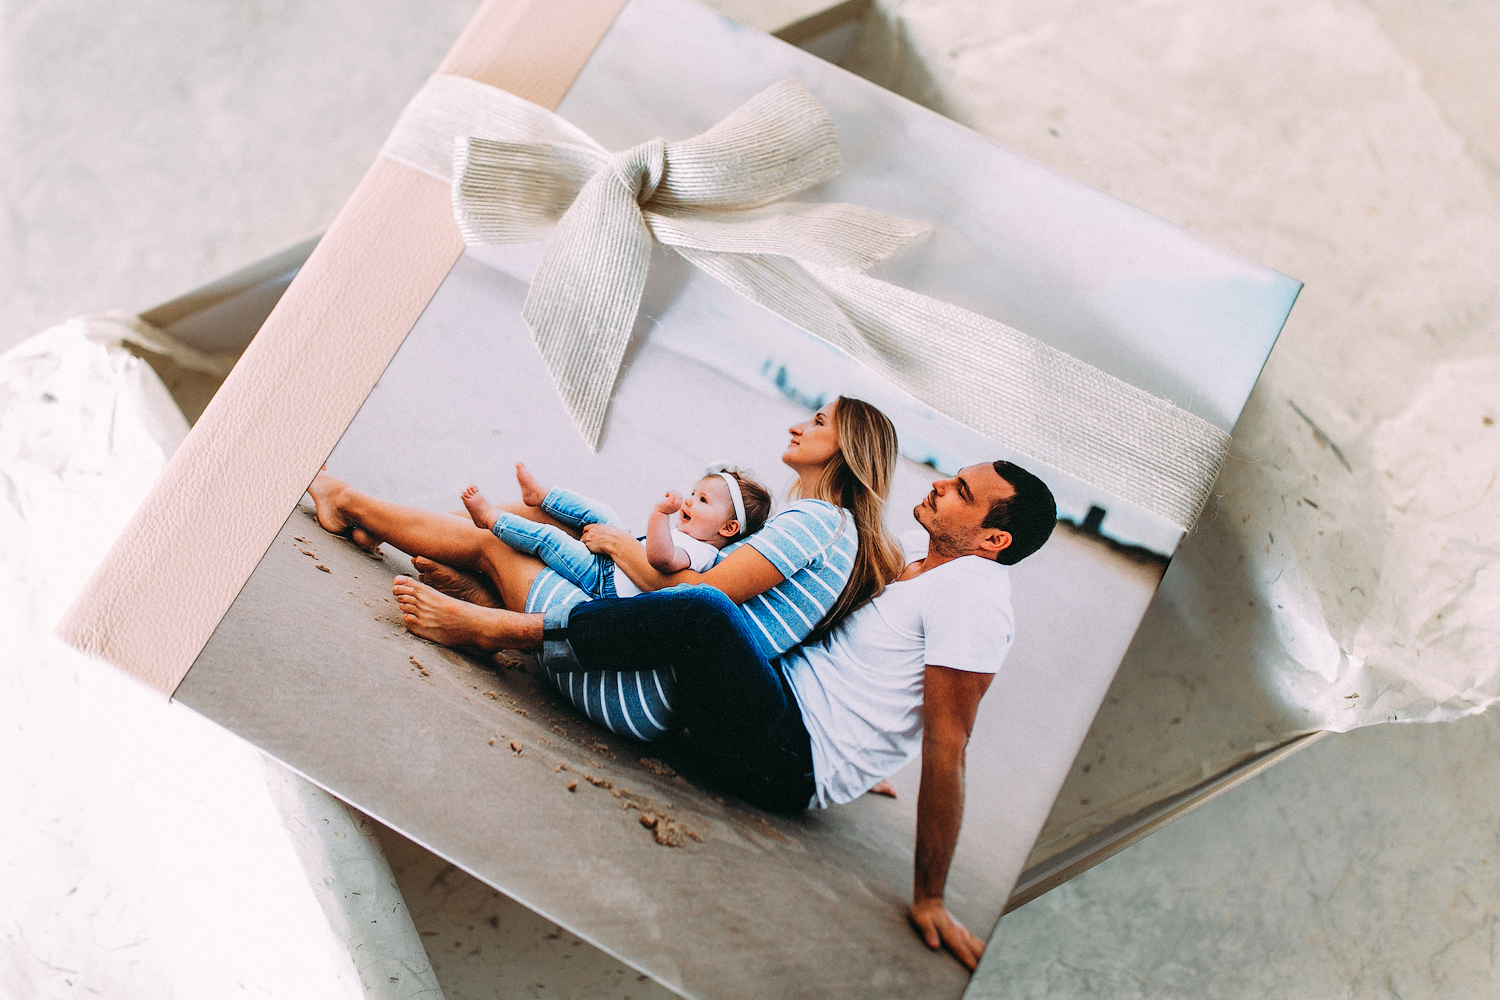 Album / folio boxes start from $850 - Our bespoke finest handcrafted albums are truly an heirloom family keepsake that will be treasured and passed down from generation to generation. We work closely with Australia's number 1 photography lab to provide the best quality for our clients.